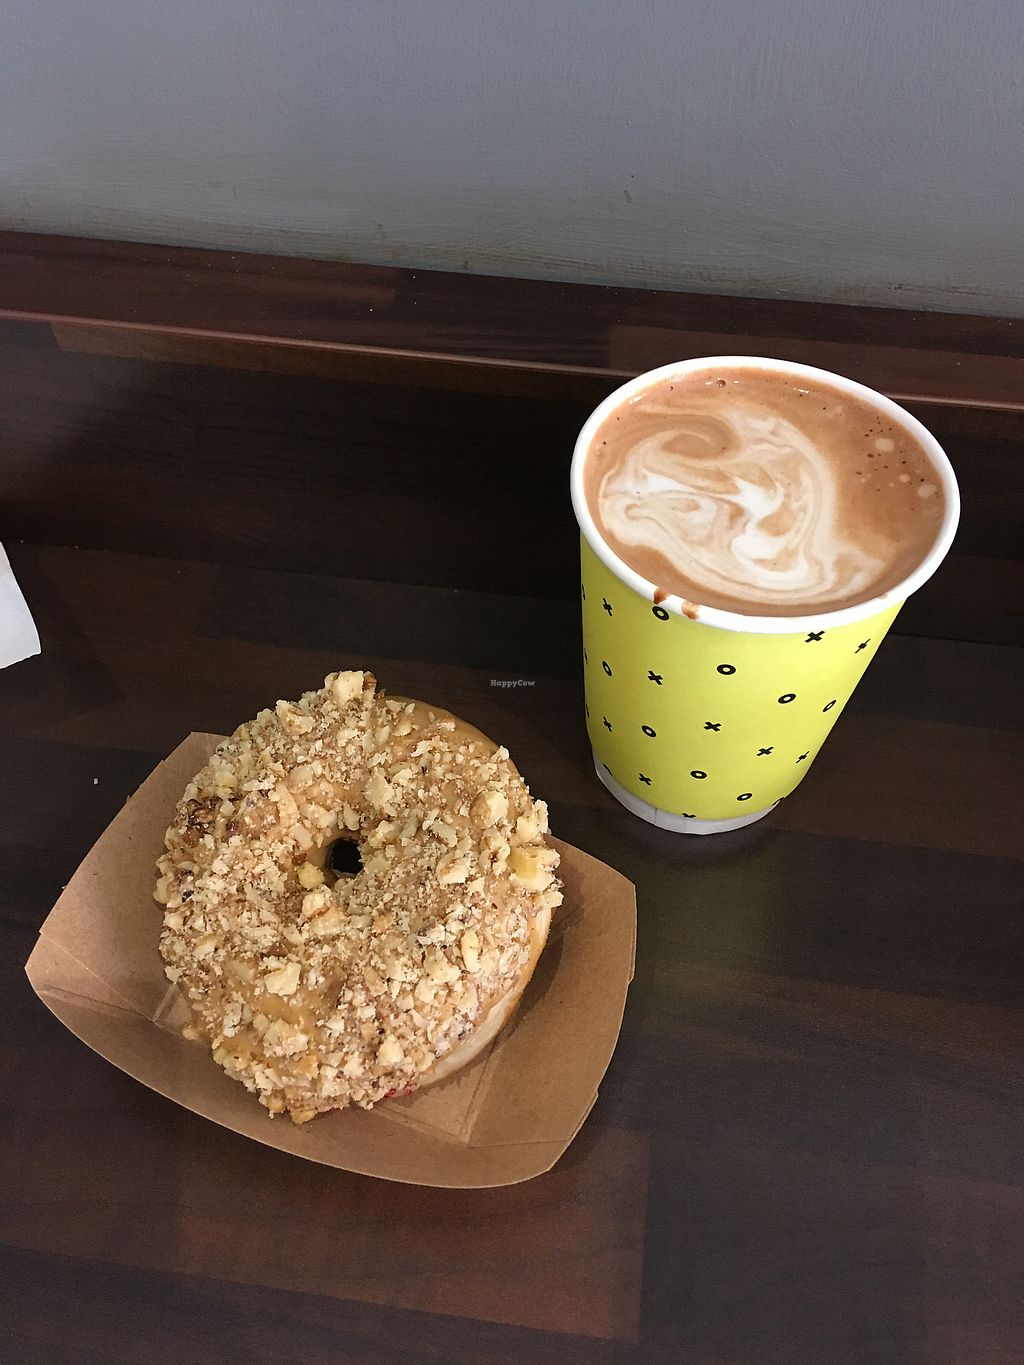 """Photo of The Rolling Donut - Dublin 1  by <a href=""""/members/profile/gbird2"""">gbird2</a> <br/>Vegan coffee and walnut and a soya mocha <br/> February 9, 2018  - <a href='/contact/abuse/image/83413/356730'>Report</a>"""